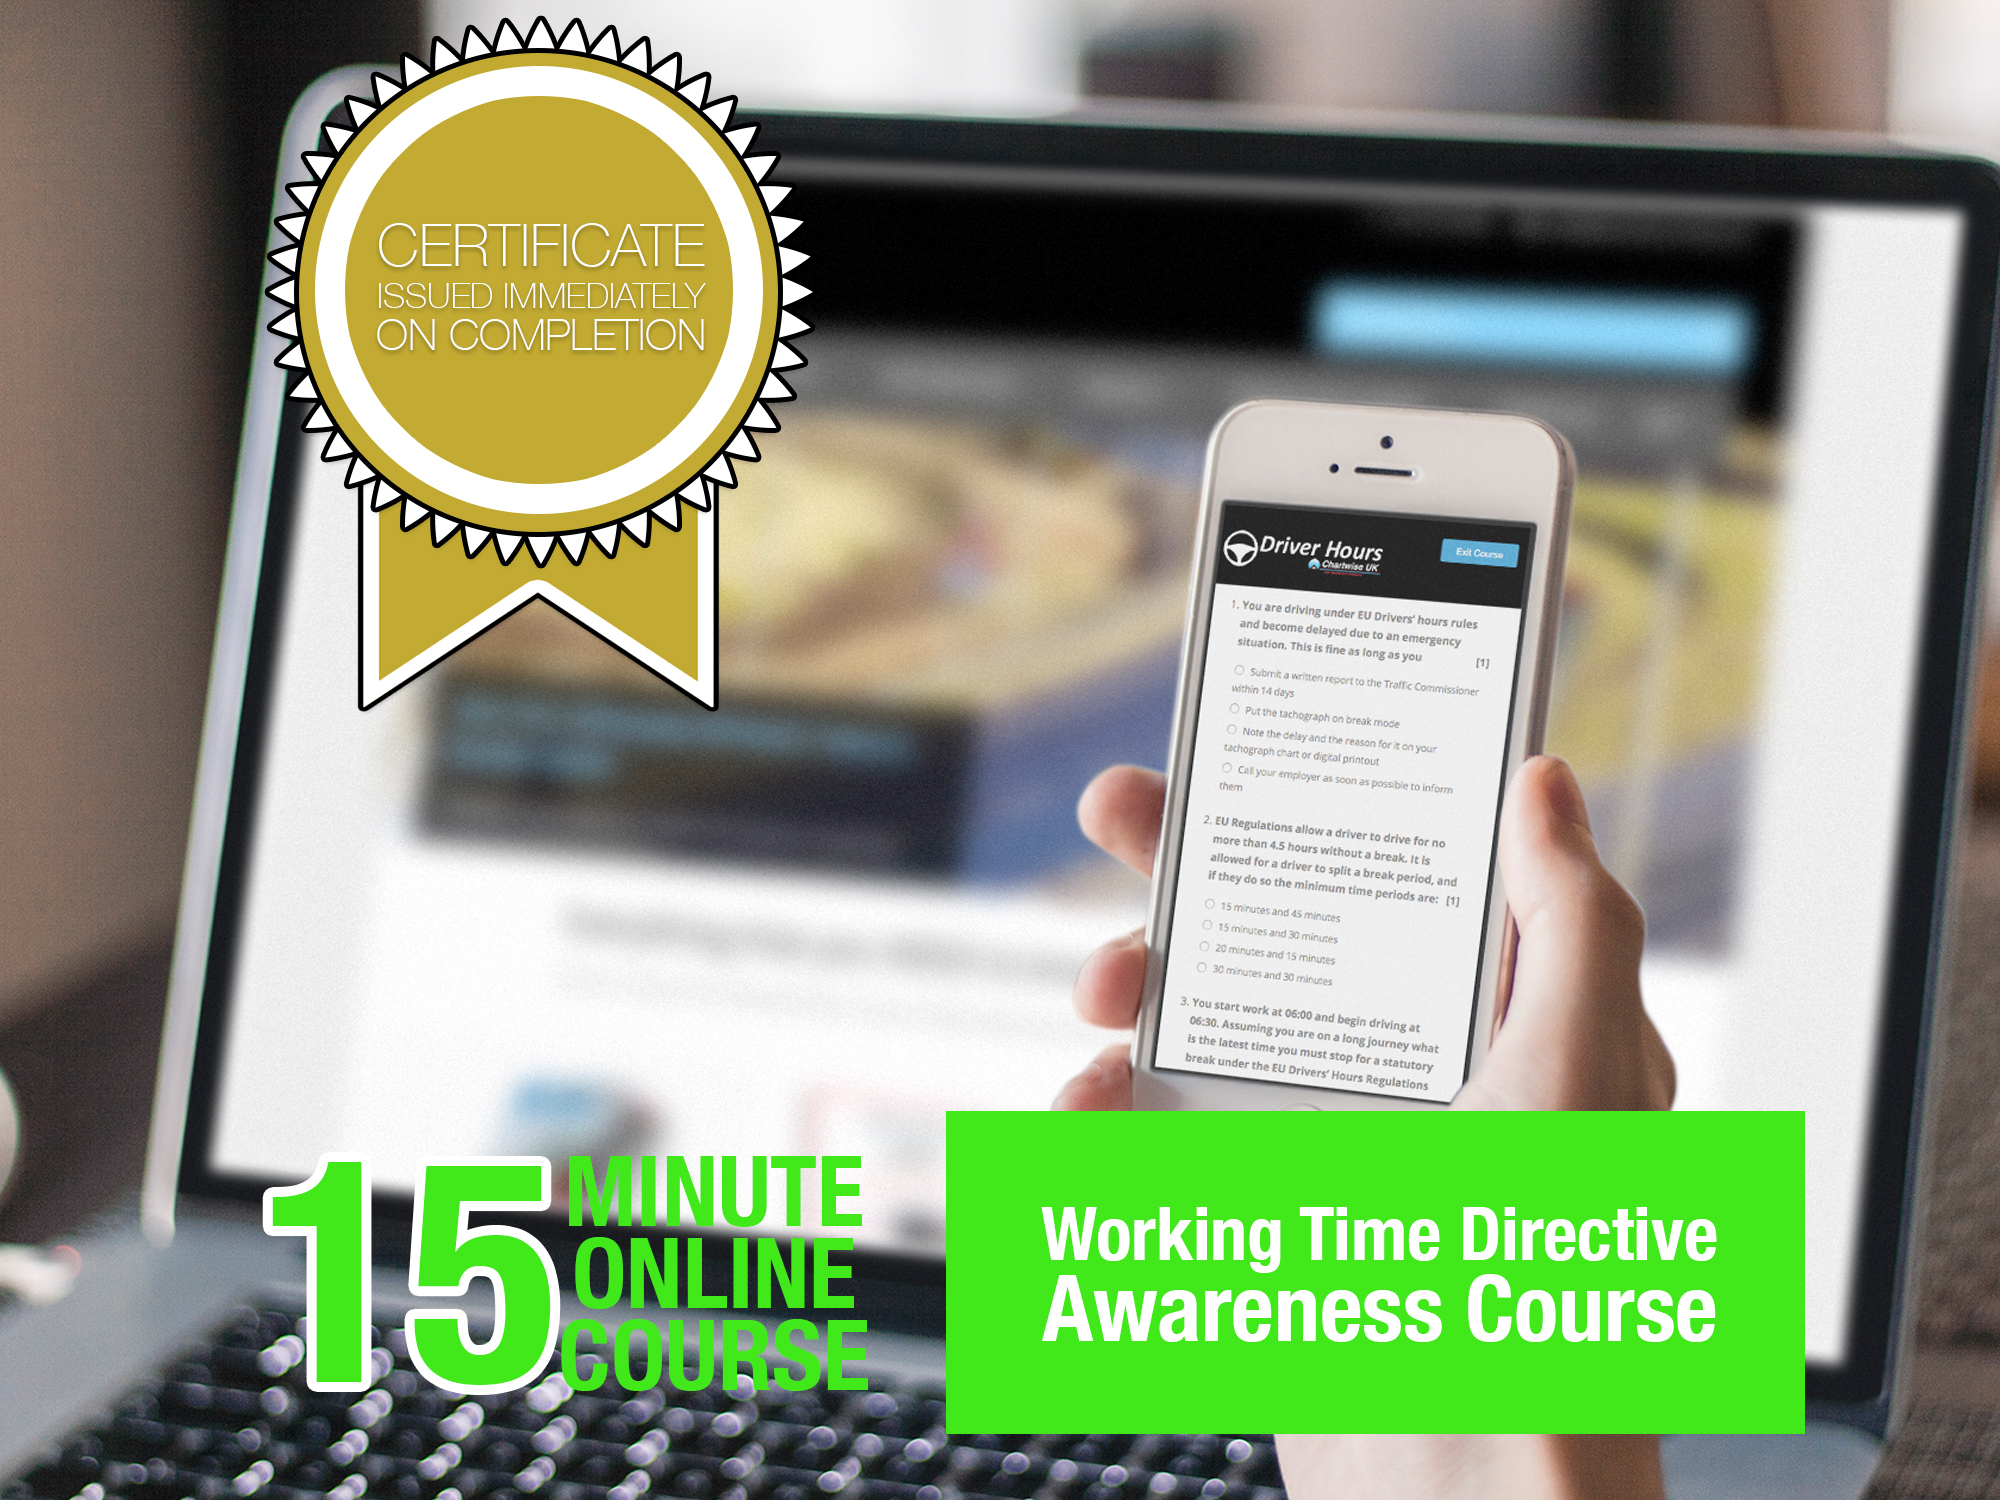 Working Time Directive Drivers Hours Spreadsheet Regarding Driver Hours » Drivers Working Time Directive Course